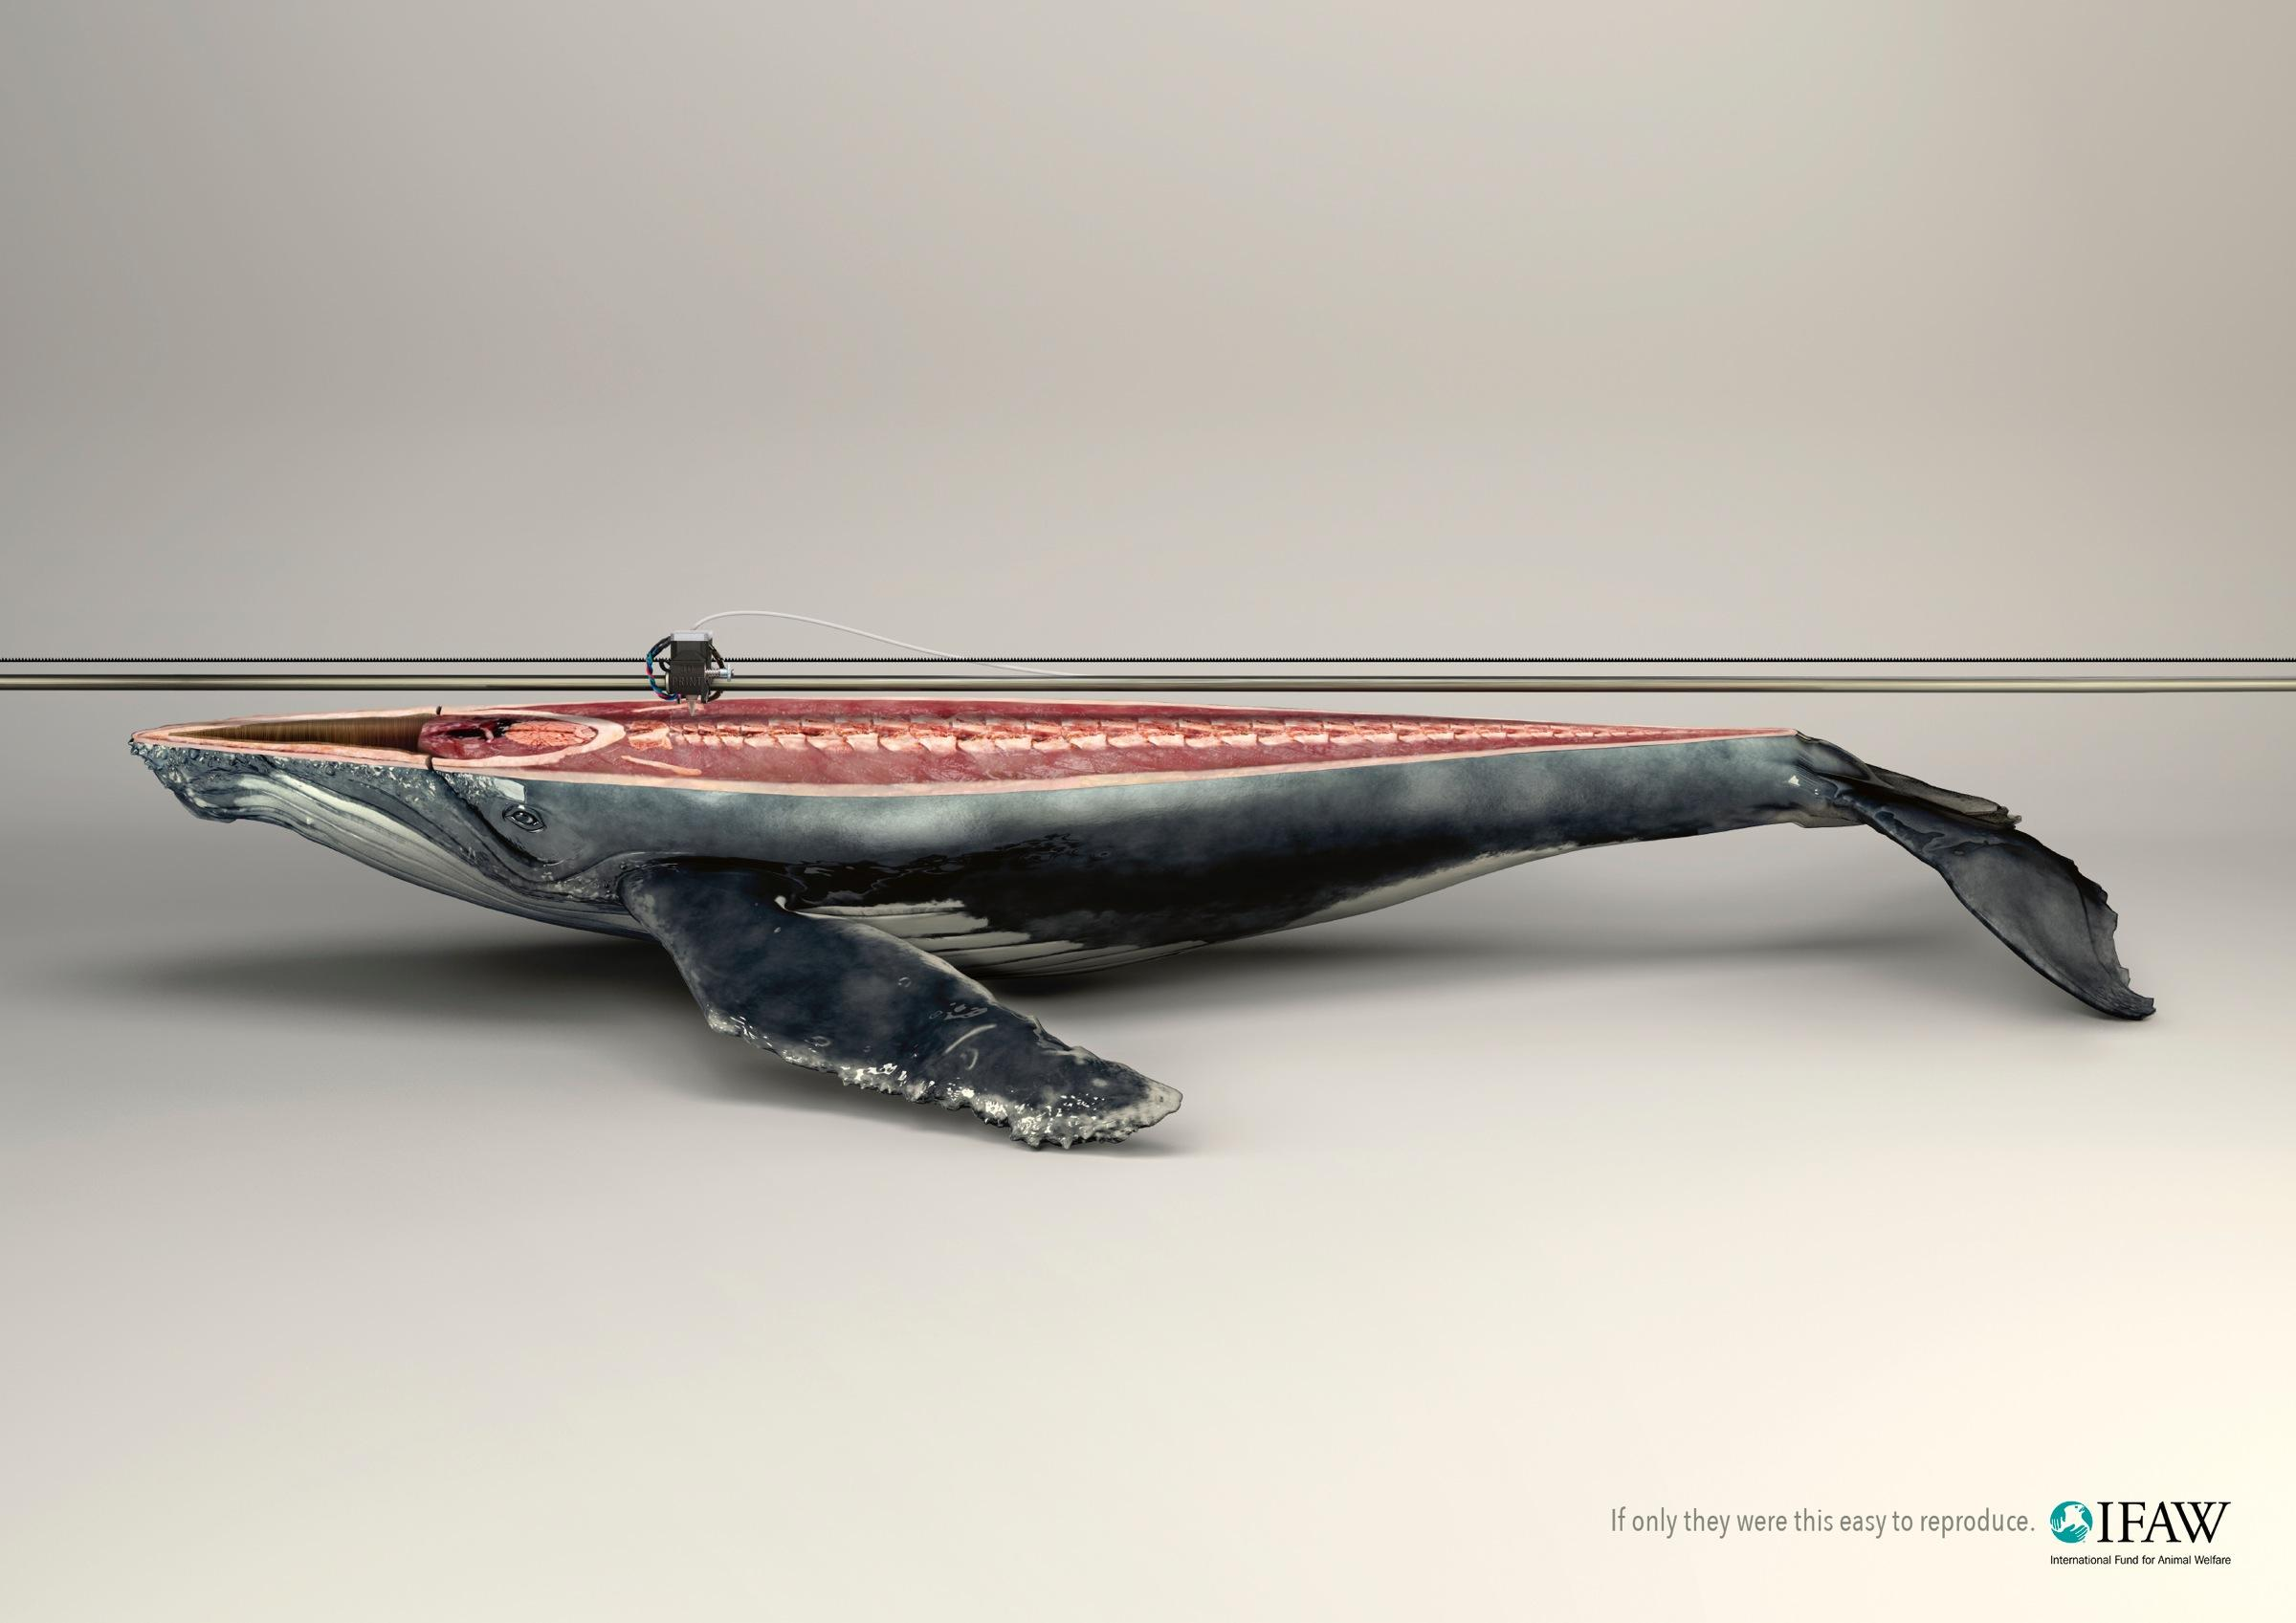 IFAW:  Whale